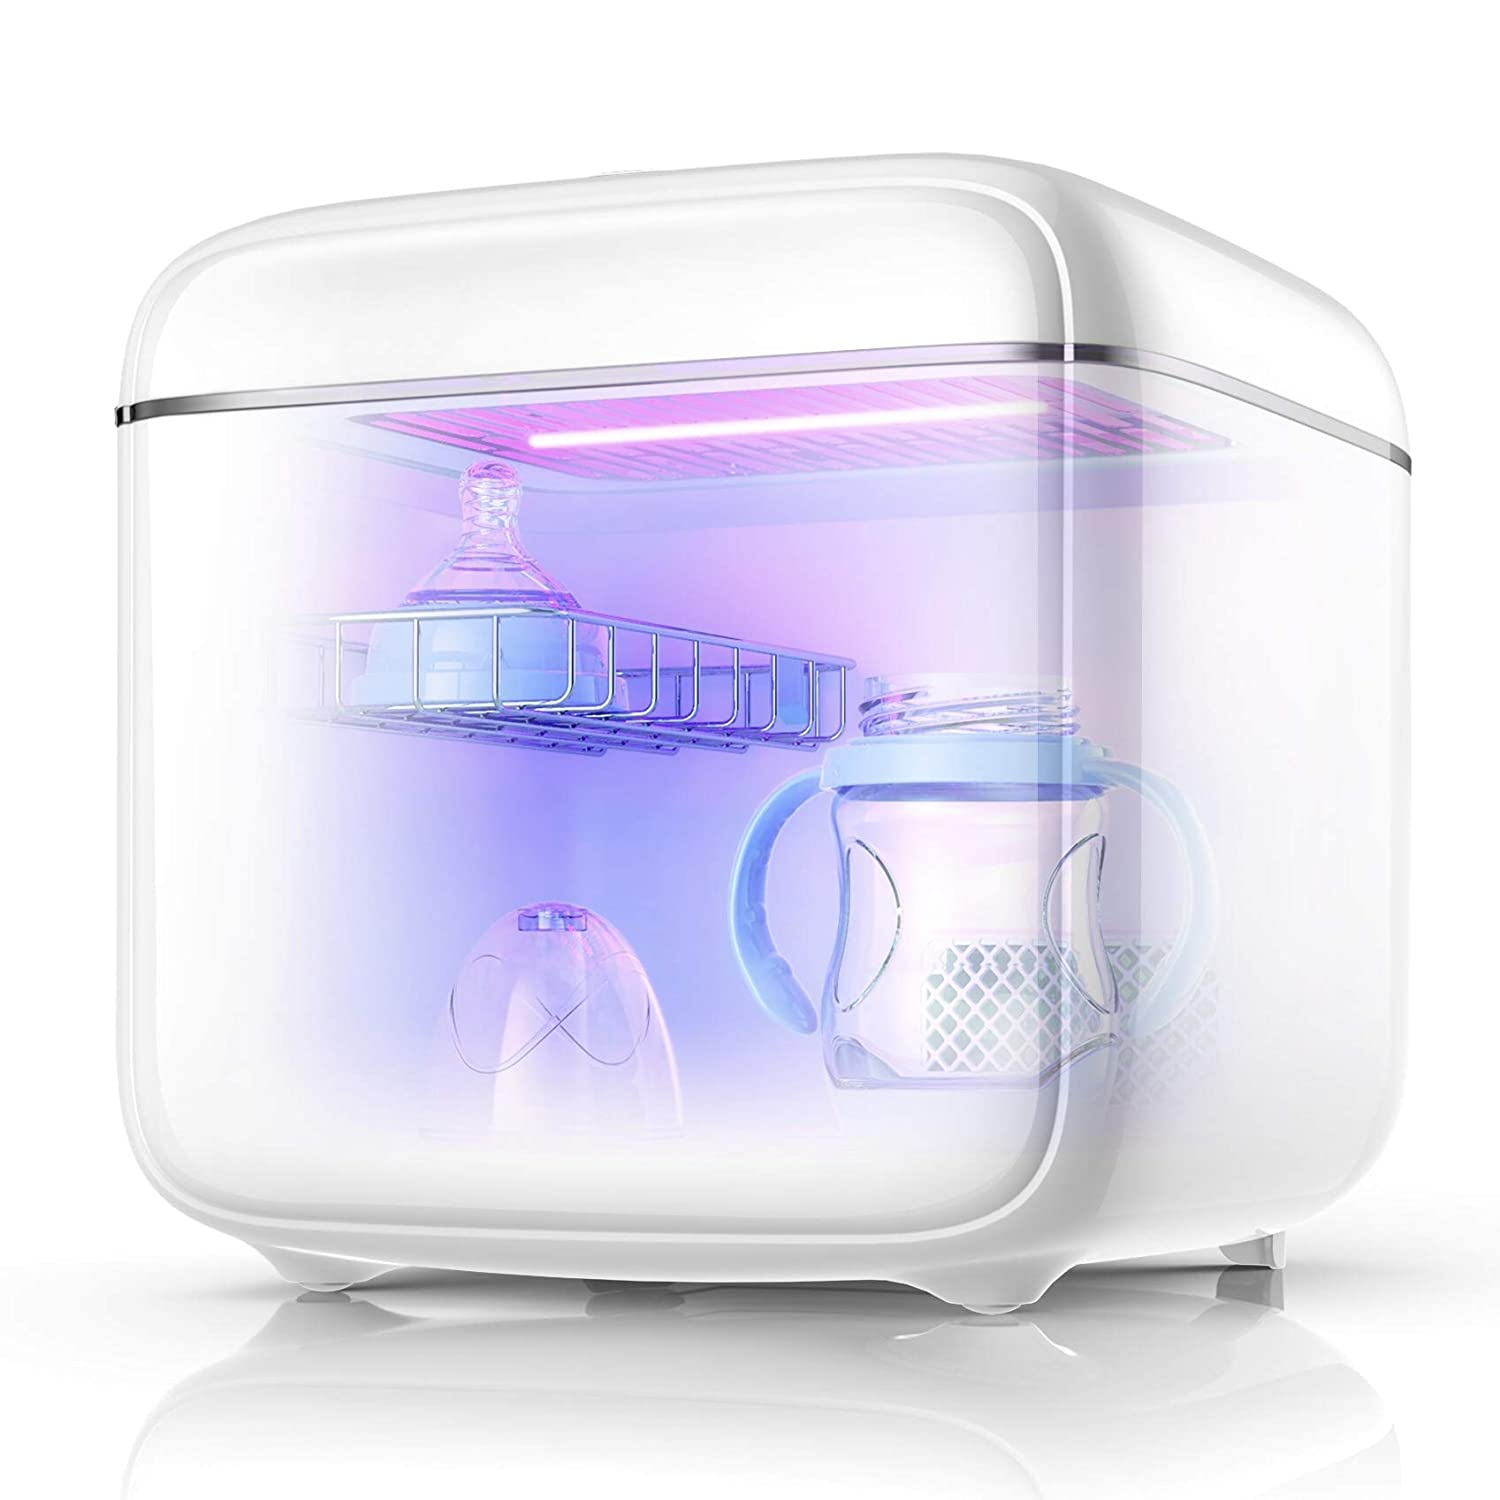 UV Sterilizer and Dryer for Baby Bottles and Toys by Coral UV Dual UV Lights New 2020 Model Ultraviolet Electric Sanitizer